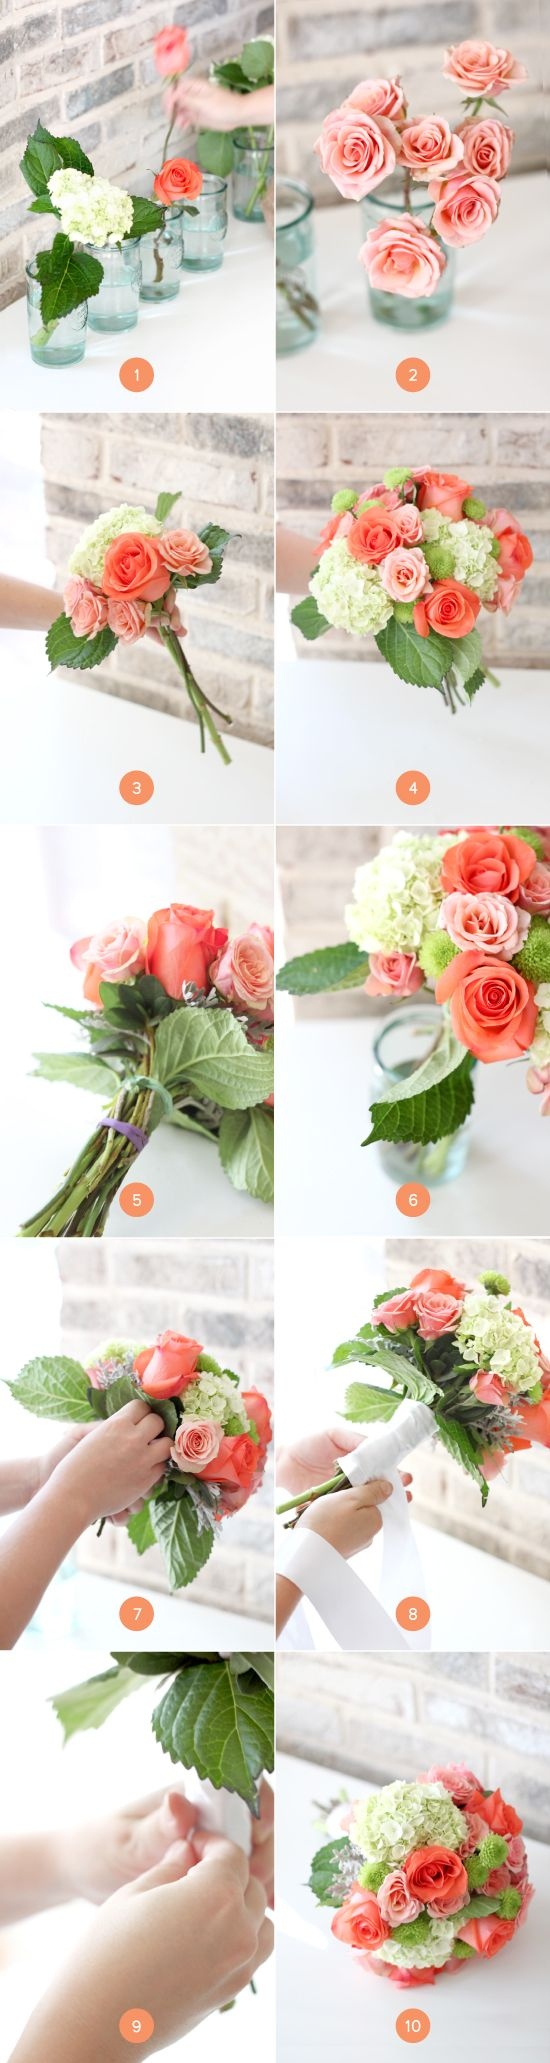 DIY grocery store bridal bouquet - instructions on minted.com/julep